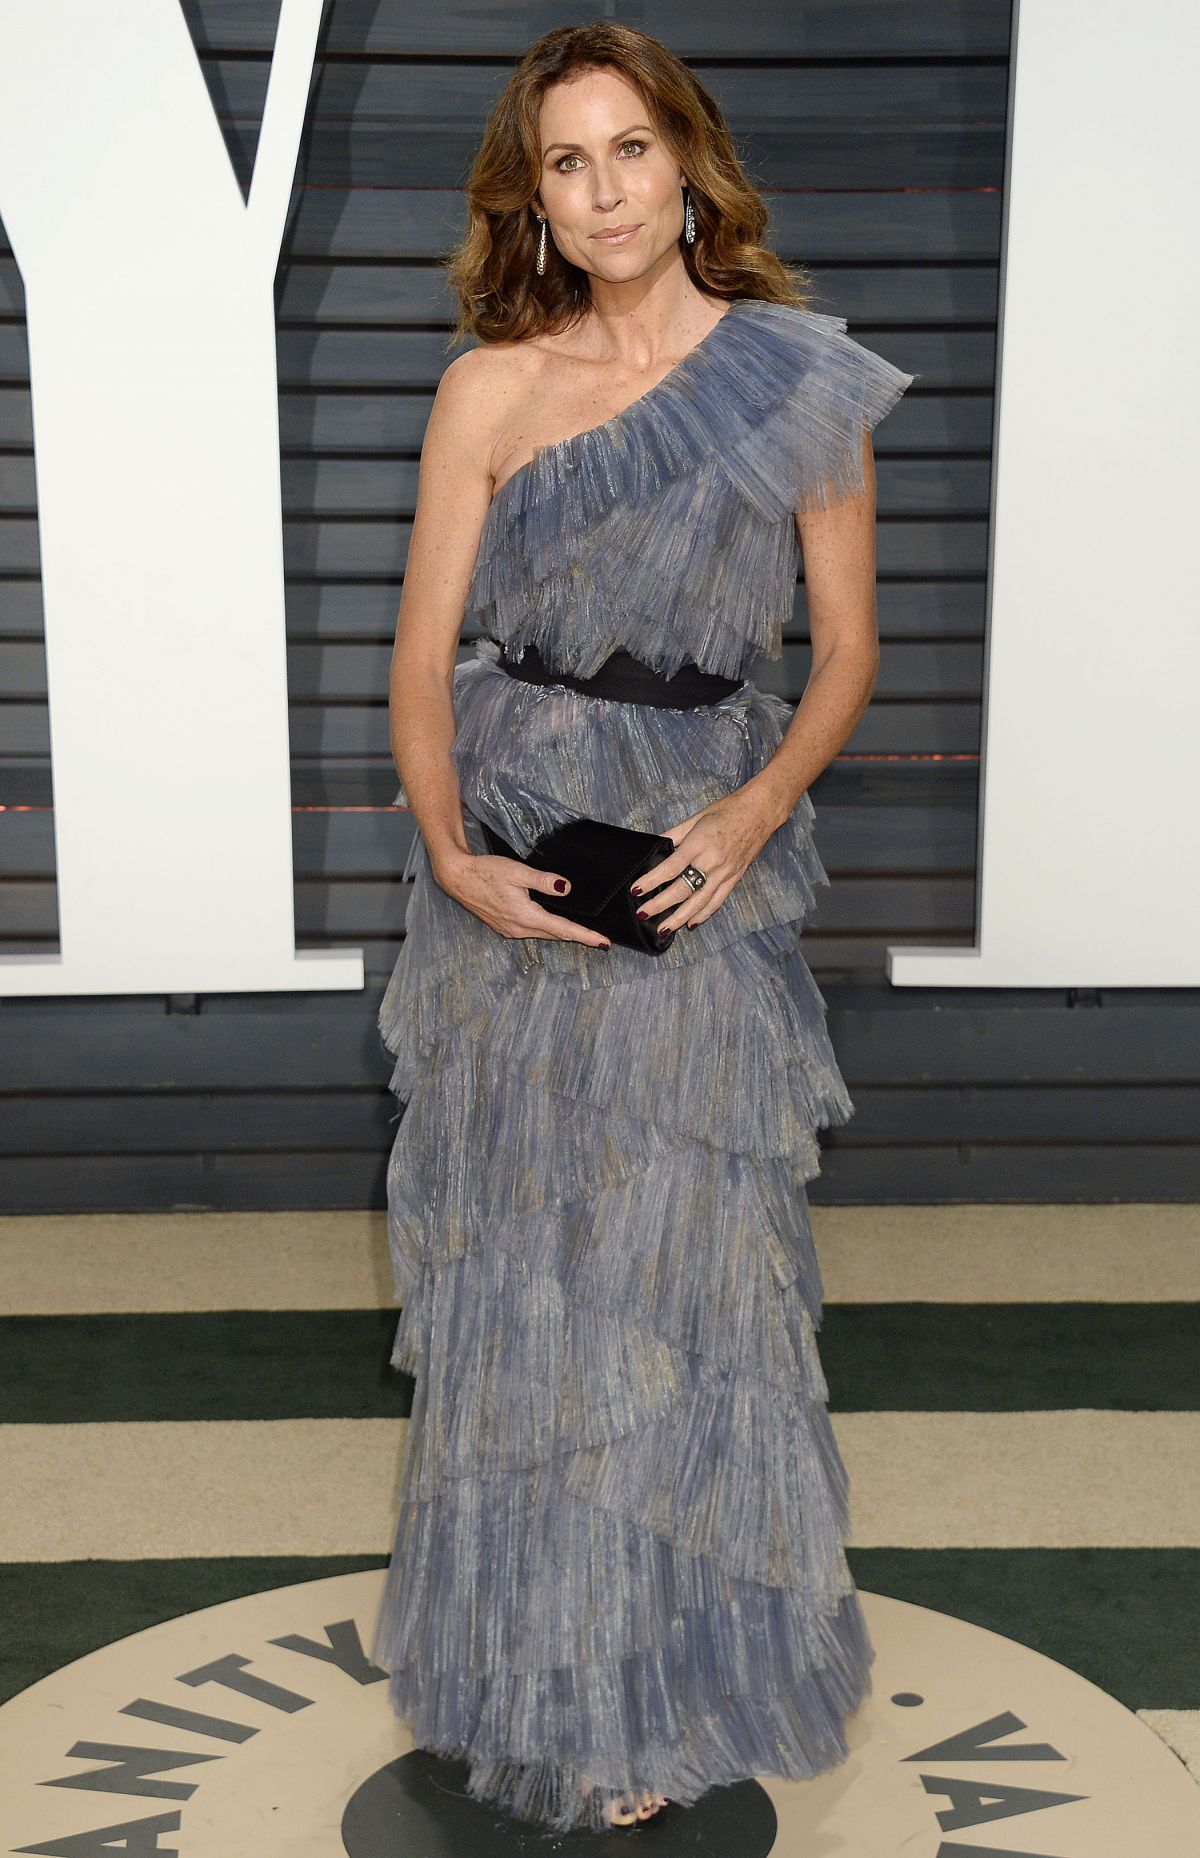 MINNIE DRIVER at 2017 Vanity Fair Oscar Party in Beverly Hills 02/26/2017